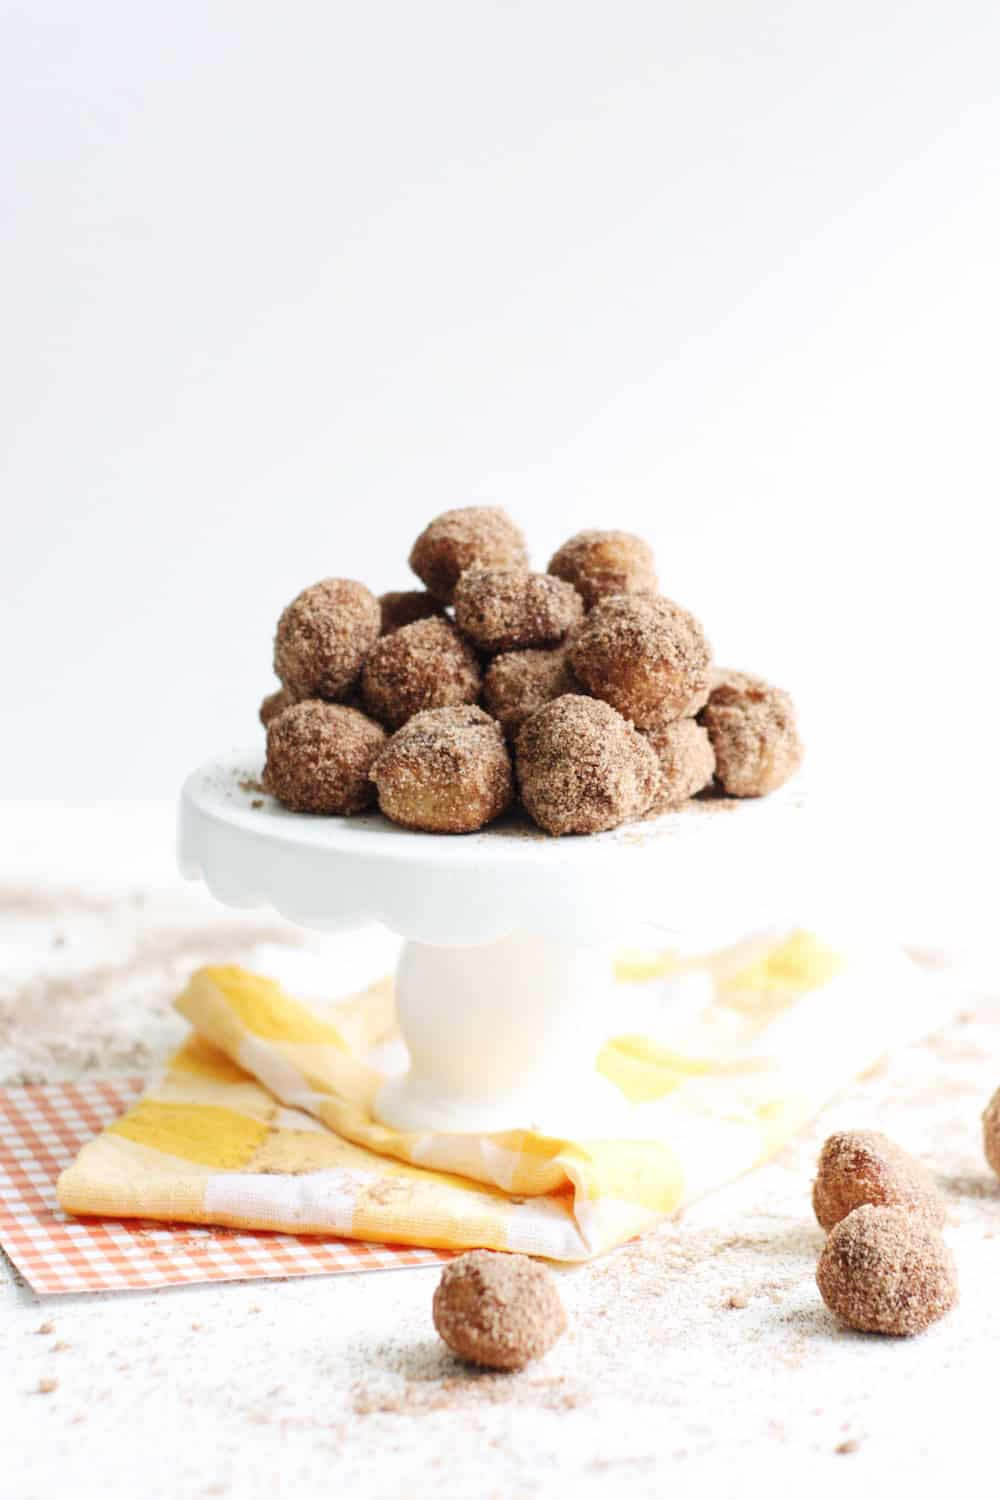 Learn how to make donut holes